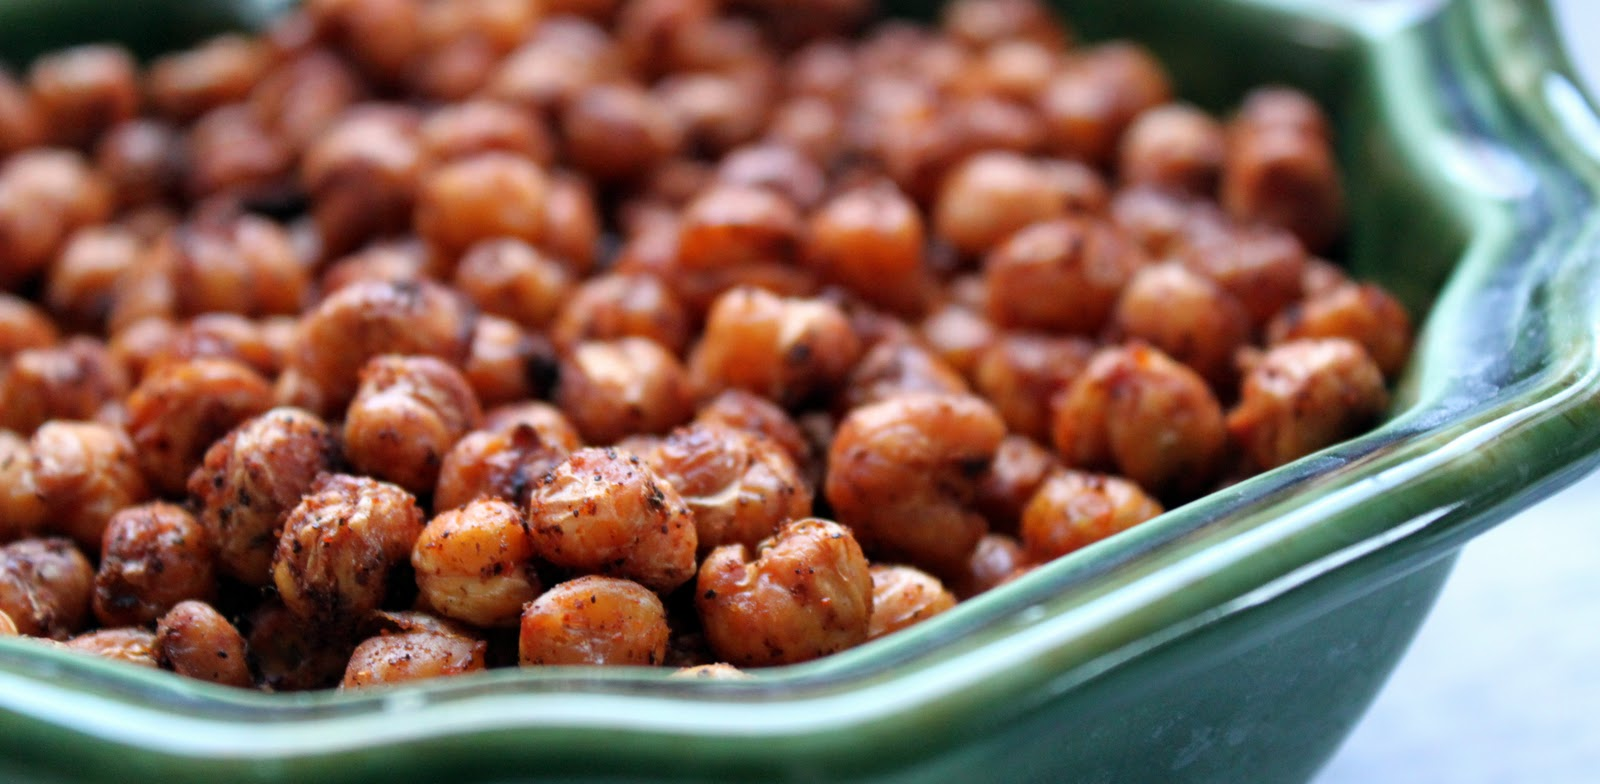 ... rinse and pat dry the two cans of chickpeas place chickpeas onto a